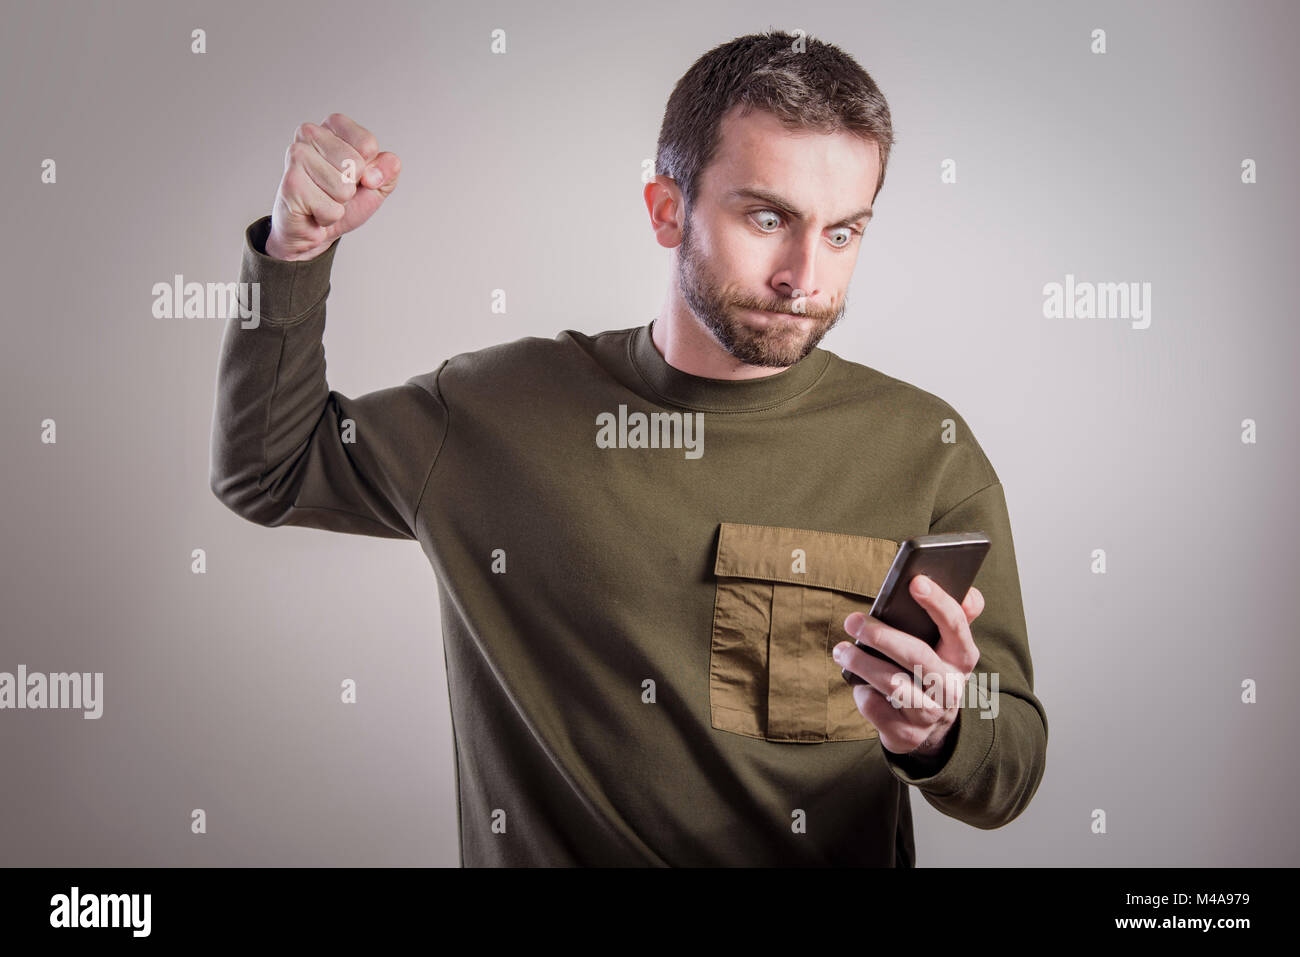 Man angry at his phone, outraged and enraged - Stock Image